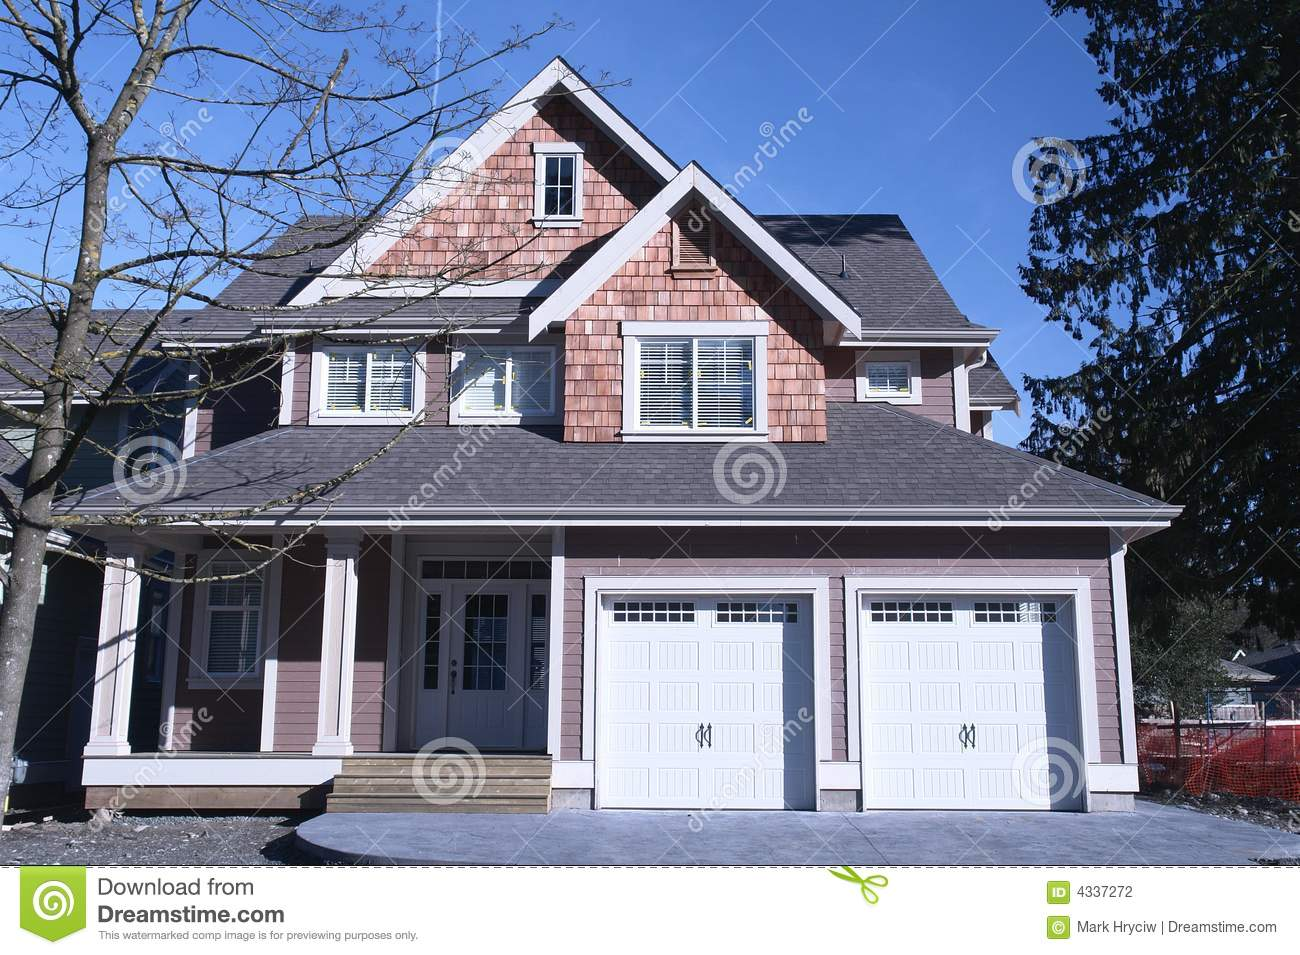 Awesome Canada Maison A Vendre Pictures - Matkin.info - matkin.info